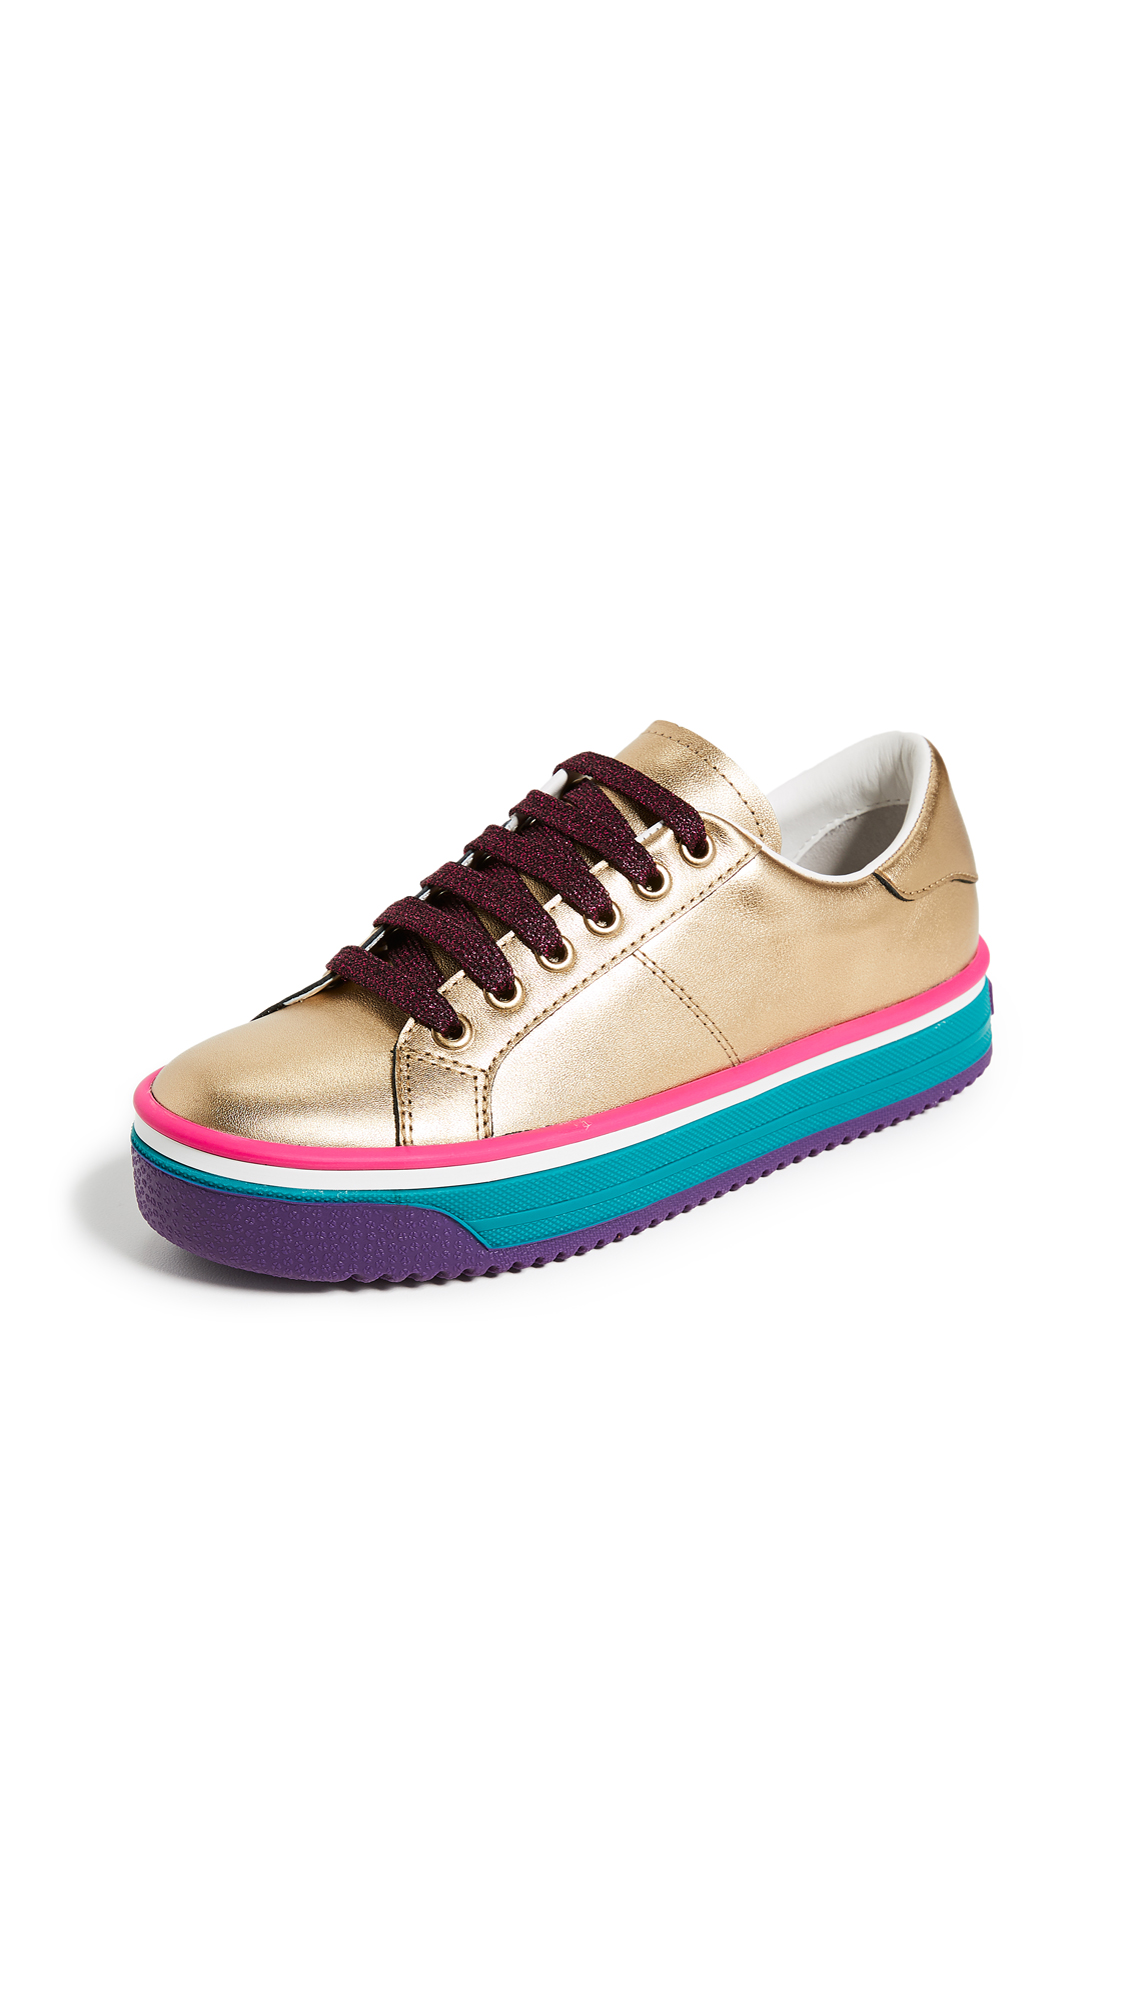 Marc Jacobs Empire Multi Color Sole Sneakers - Gold Multi